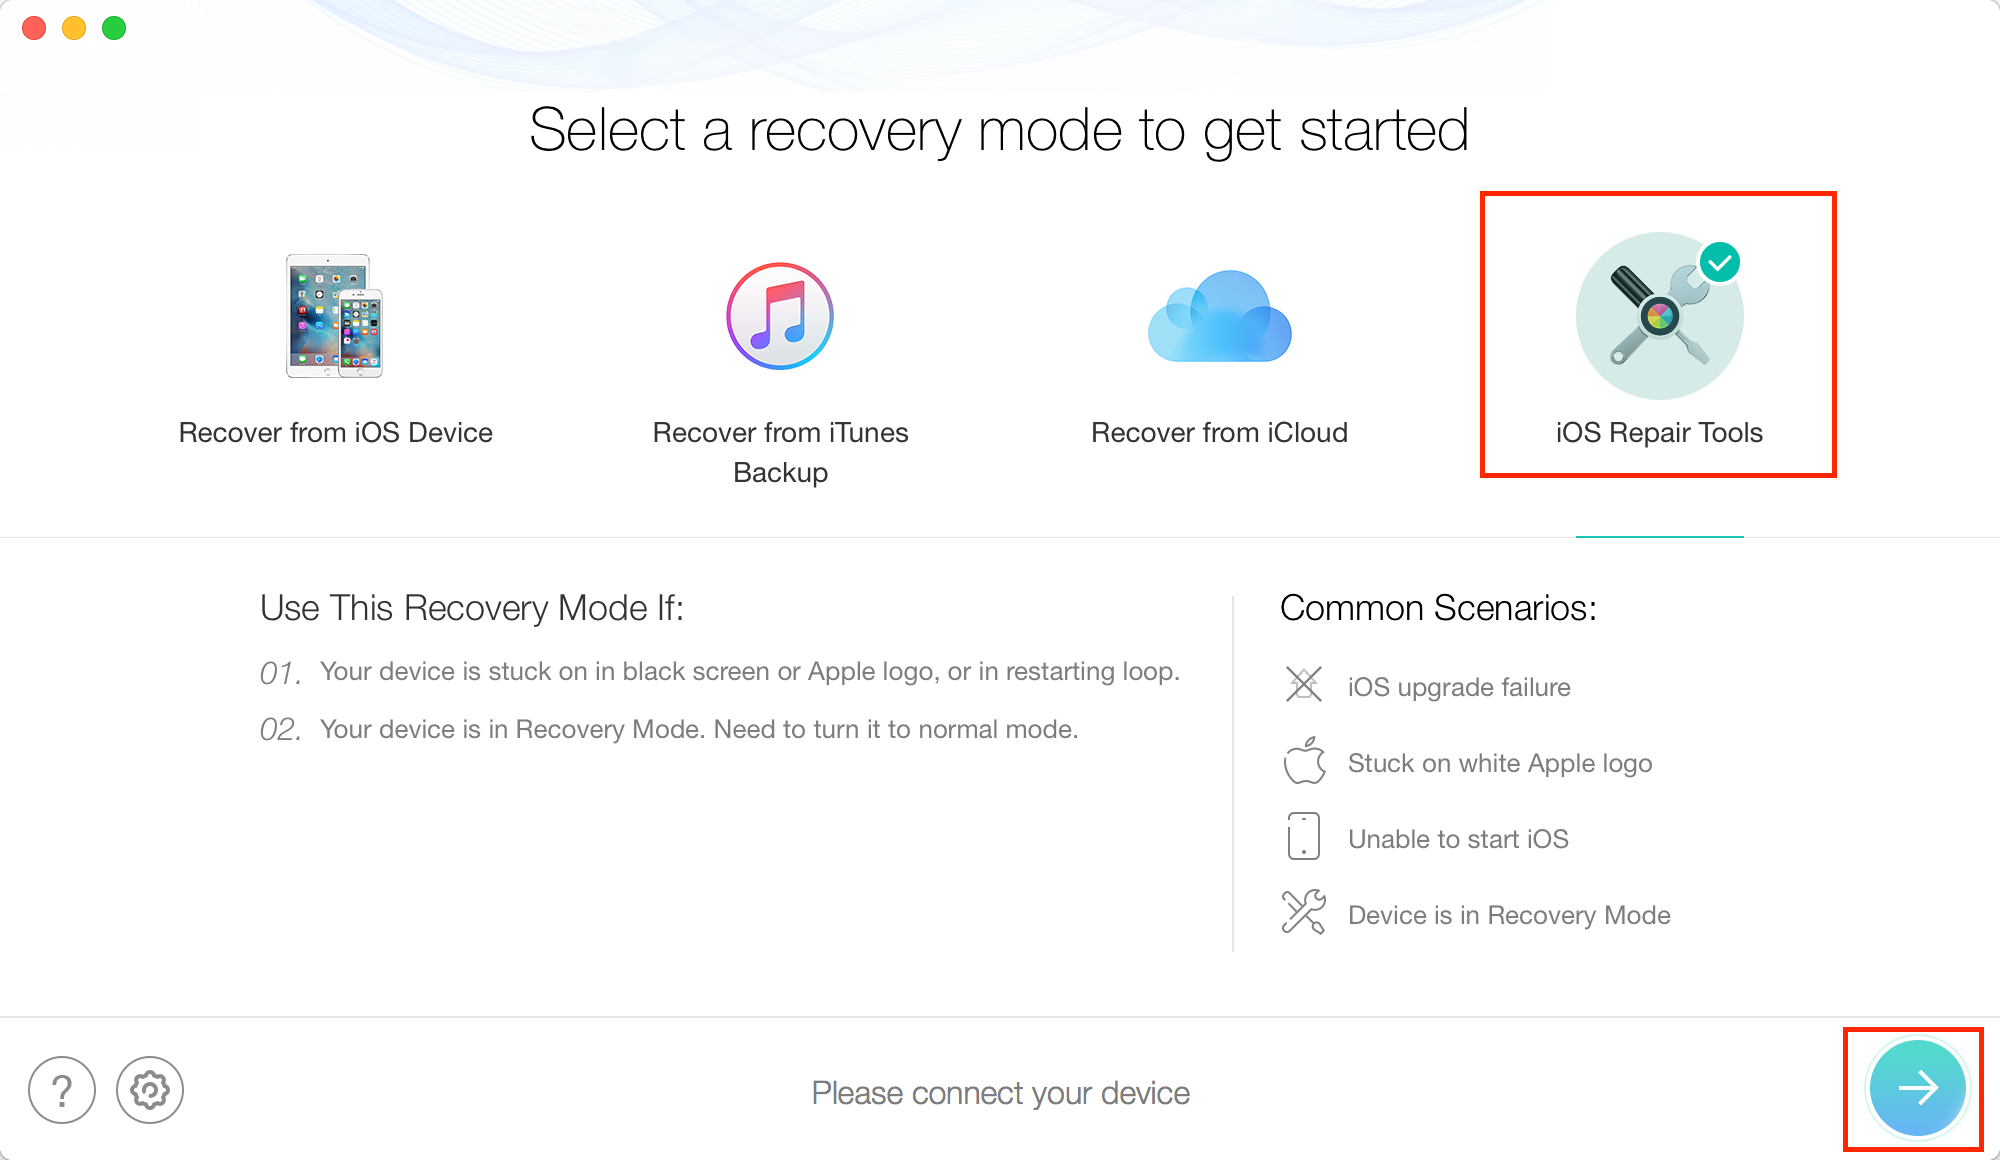 Restore iPhone in Recovery Mode Without iTune - Step 1